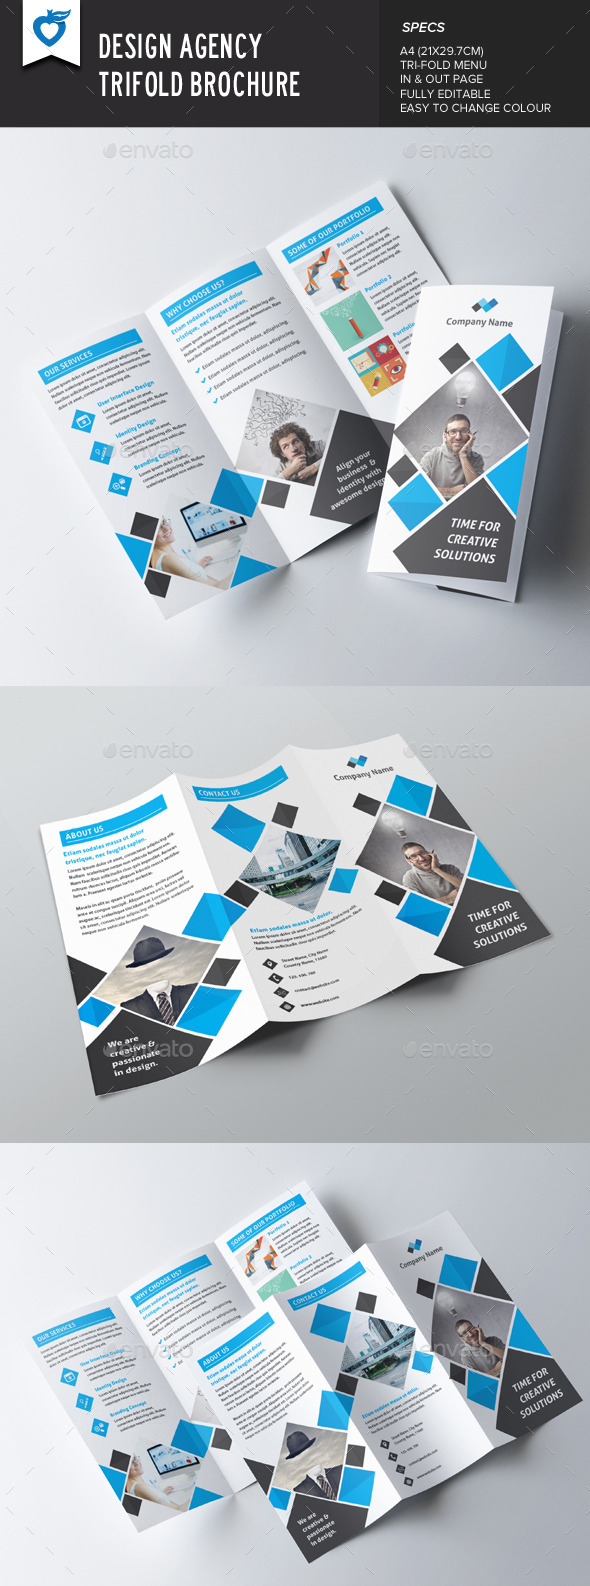 Design Agency Trifold Brochure - Corporate Brochures